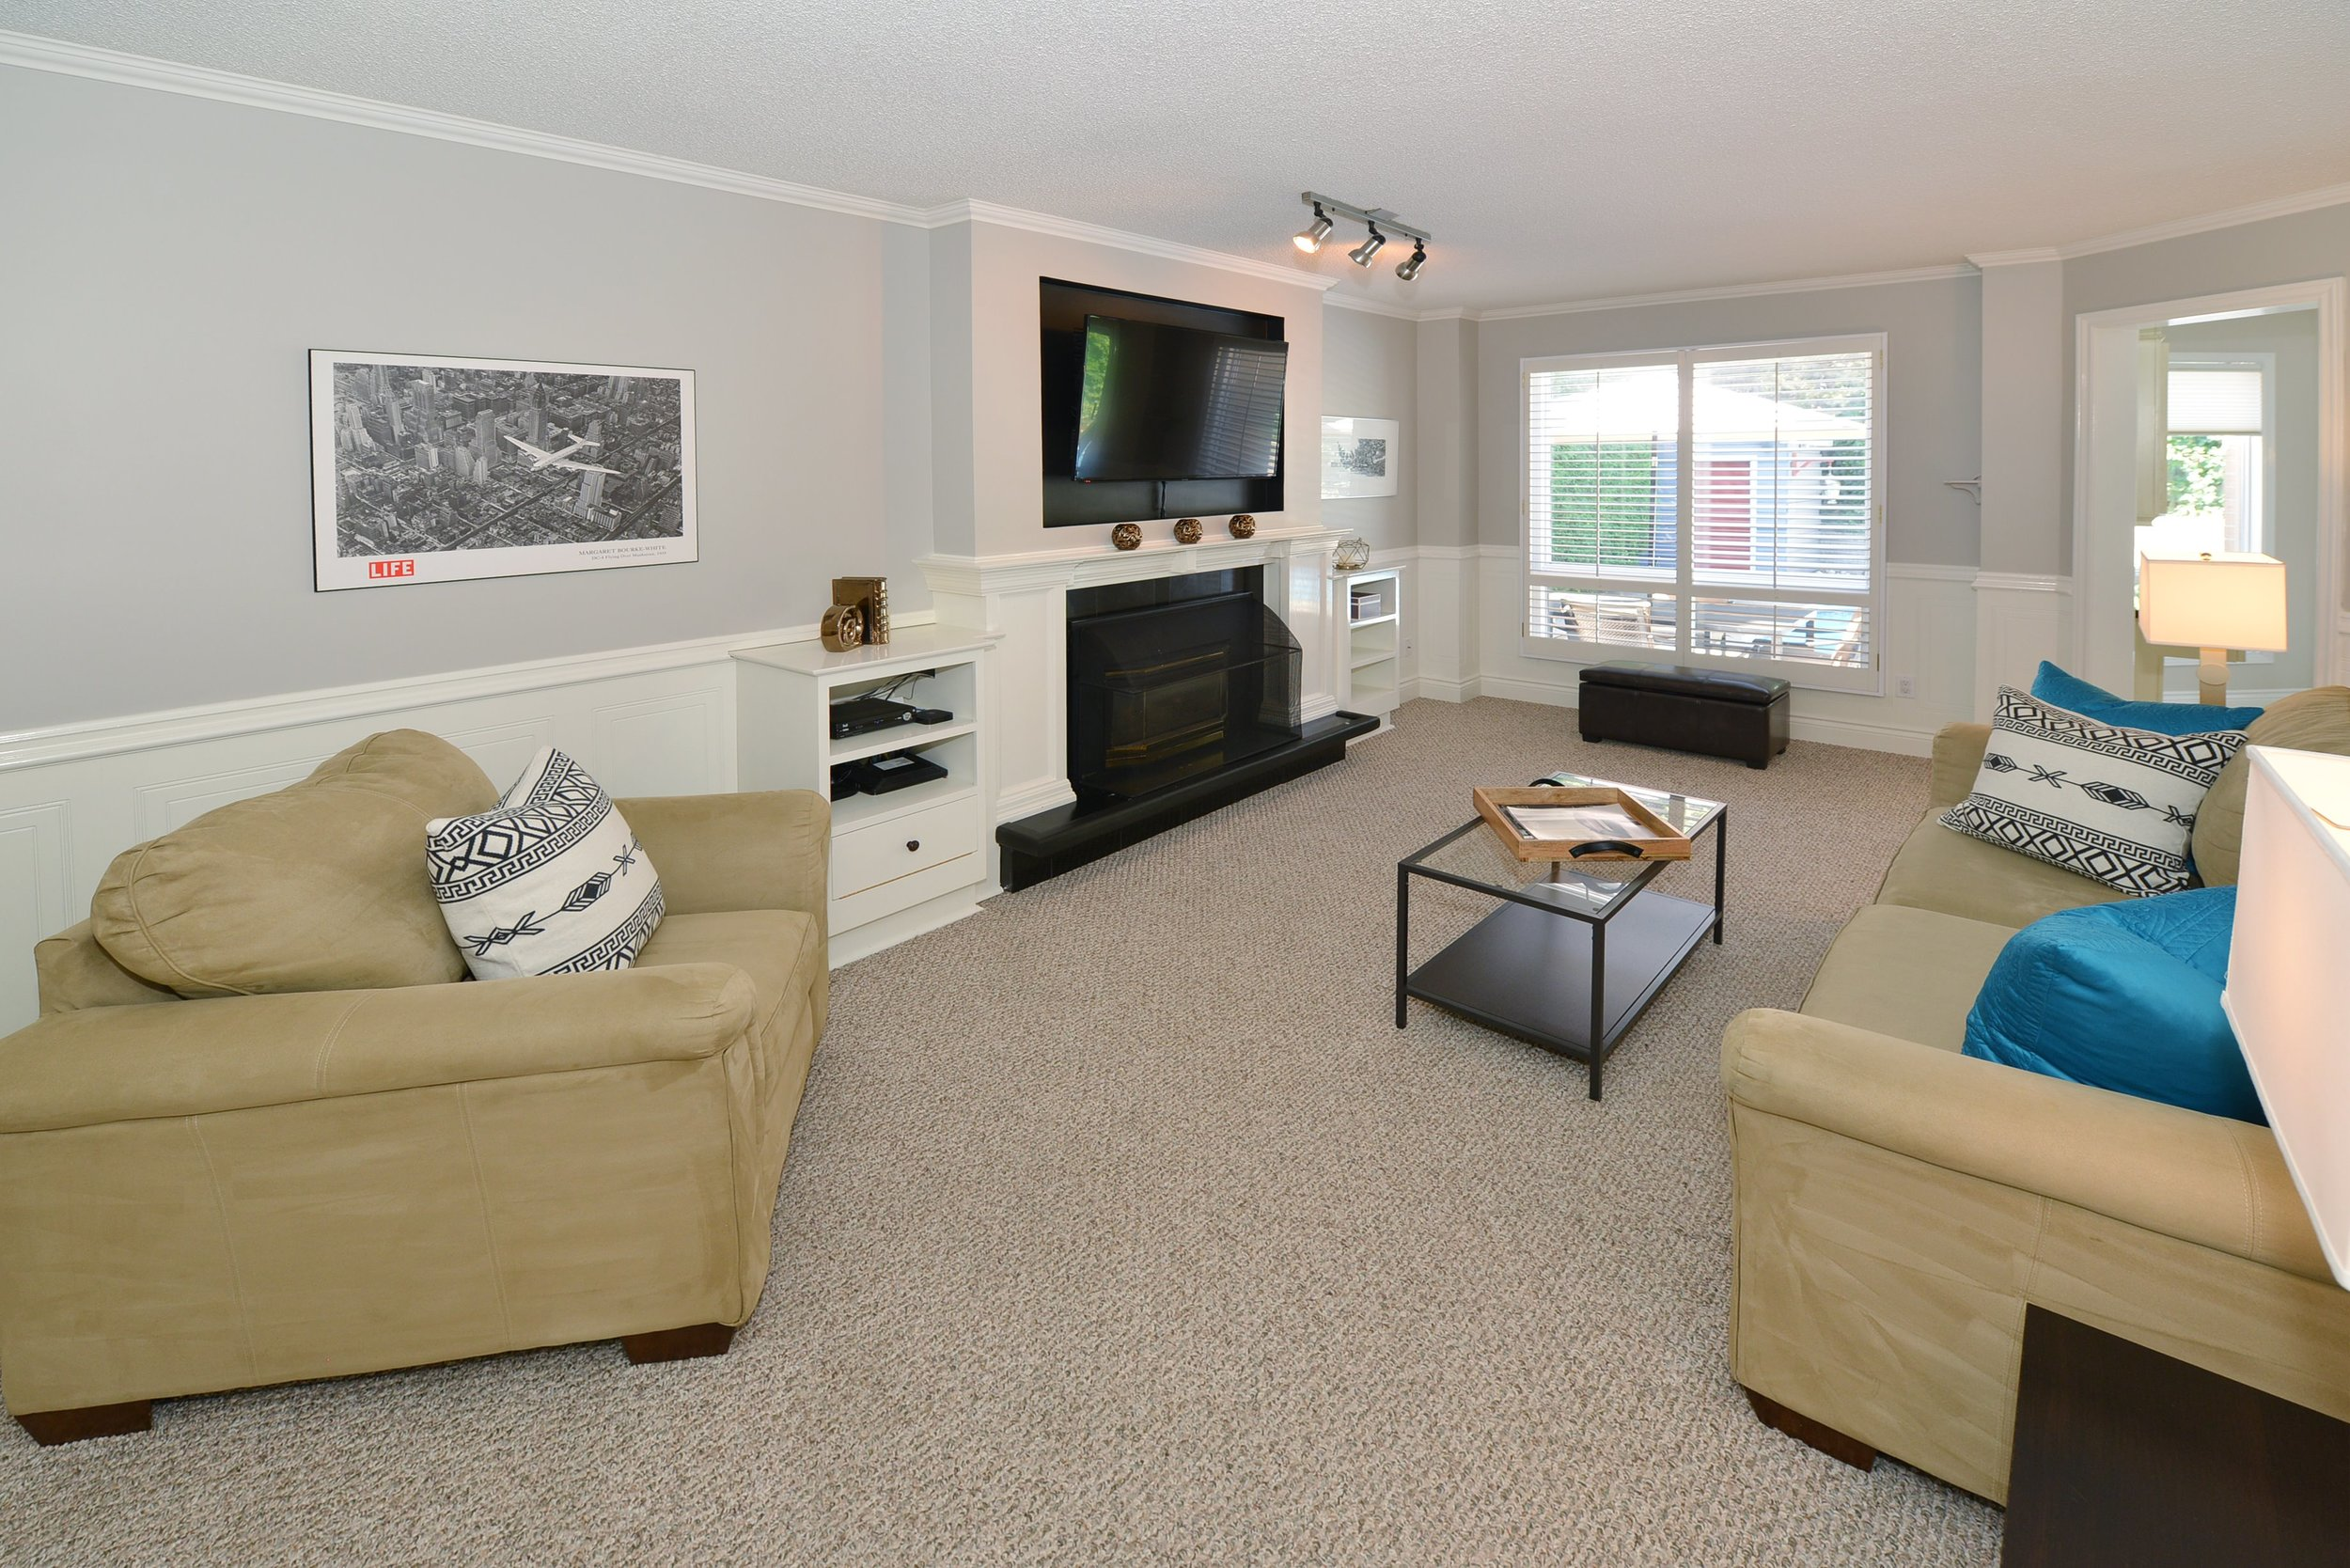 2767_guilford_crescent_MLS30538562_HID1121270_ROOMfamilyroom.jpg